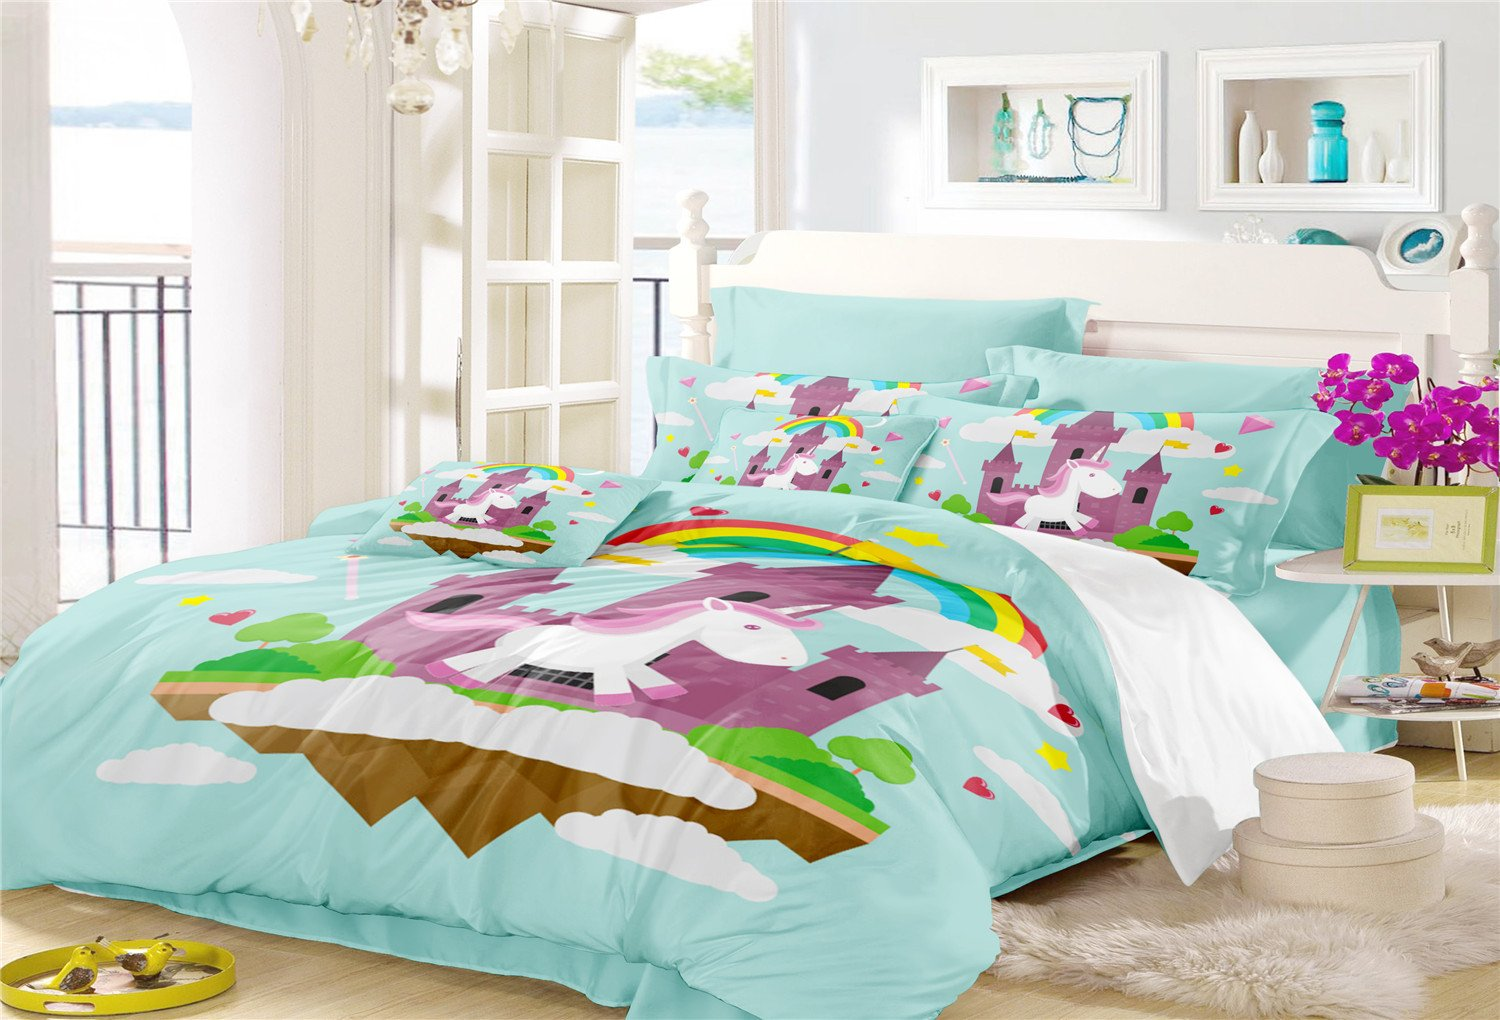 Magical Rainbow Unicorn Duvet Cover Set-1 Queen Size Duvet Cover+2 Pillowcase-Best Unicorn Gifts for Girls